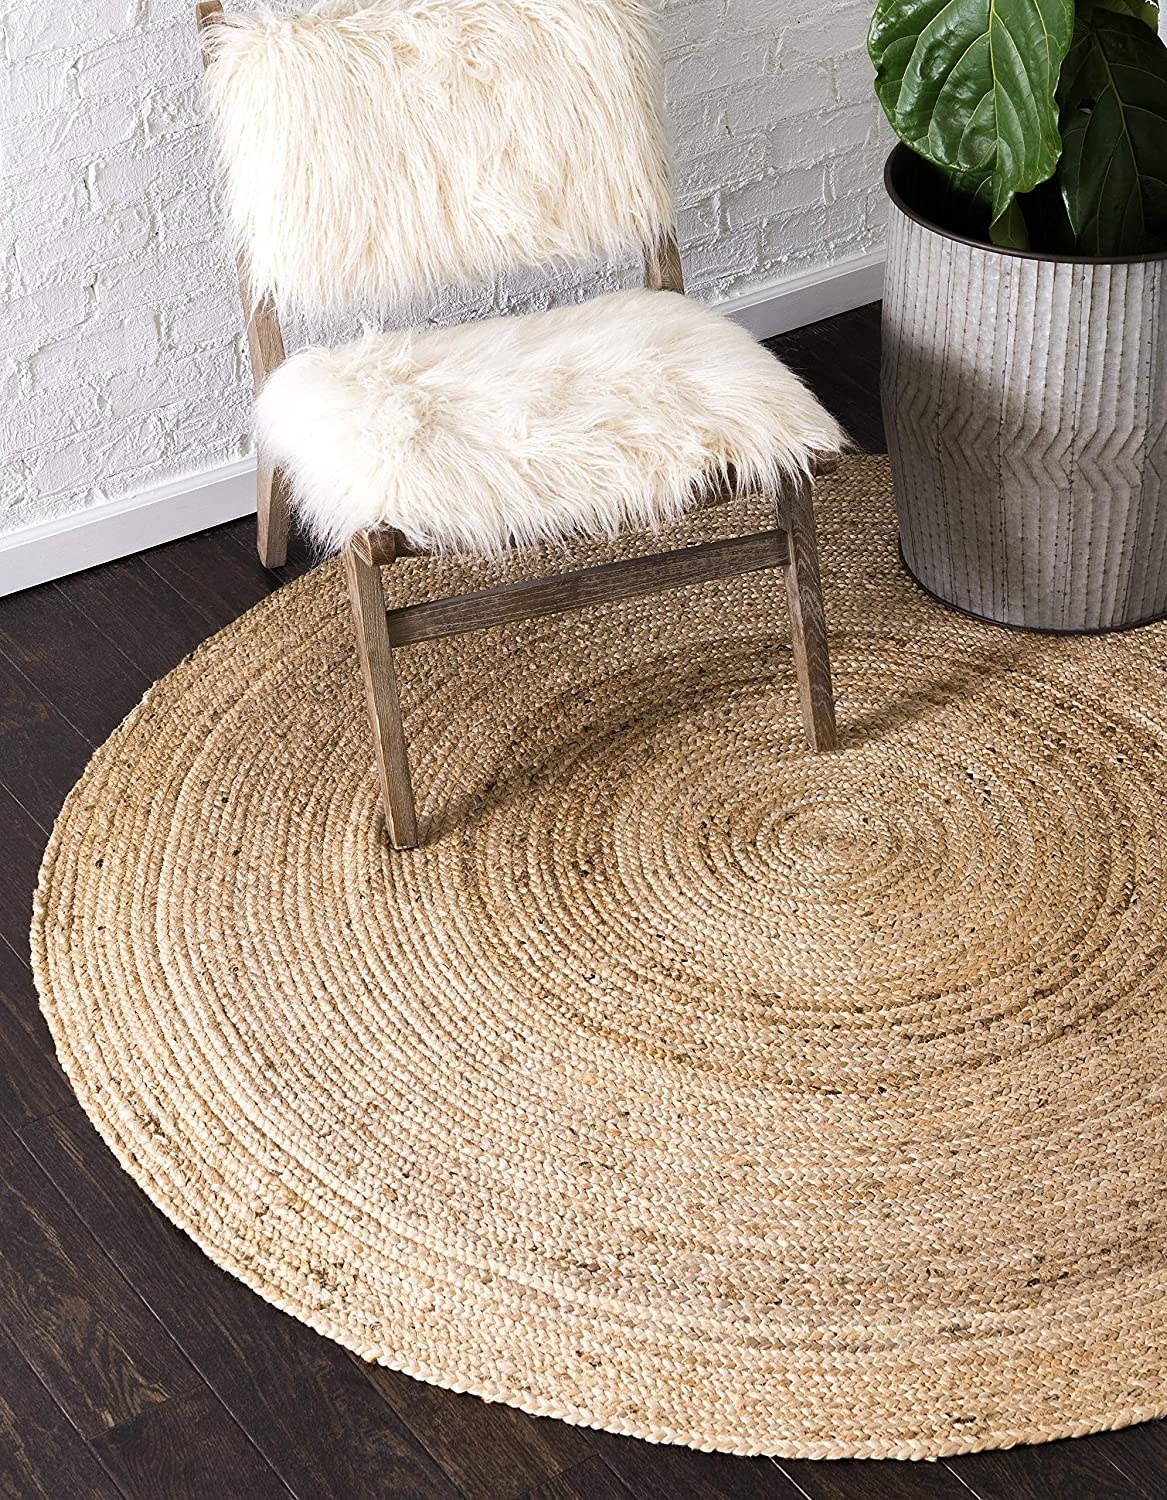 the rug with a chair